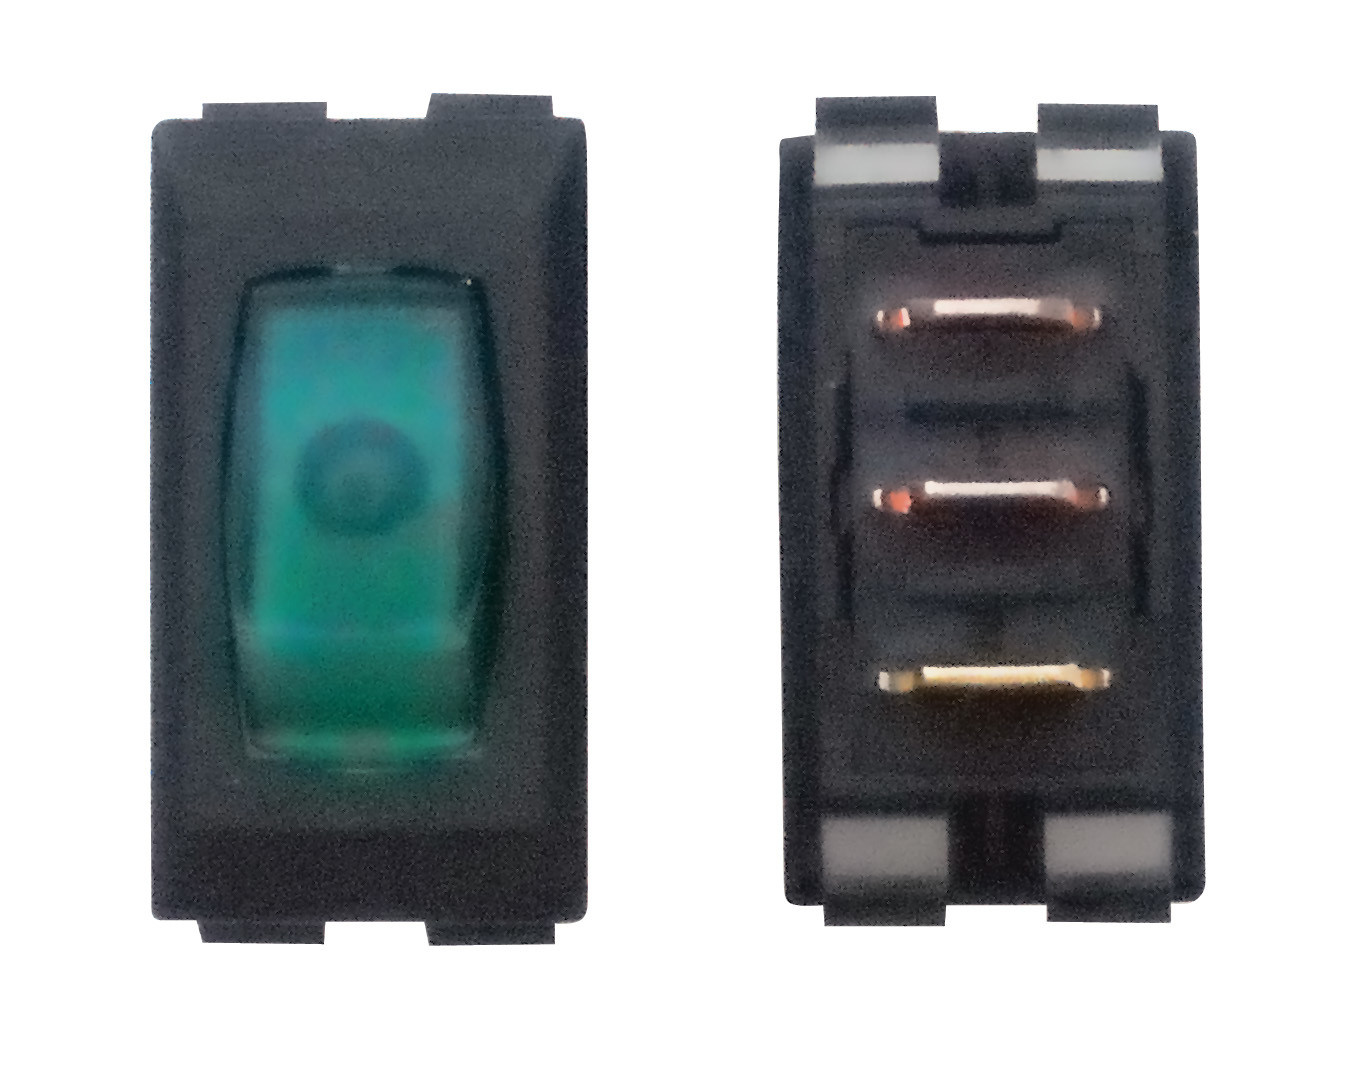 Illuminated On/Off Switch - Green/Black 3/bag